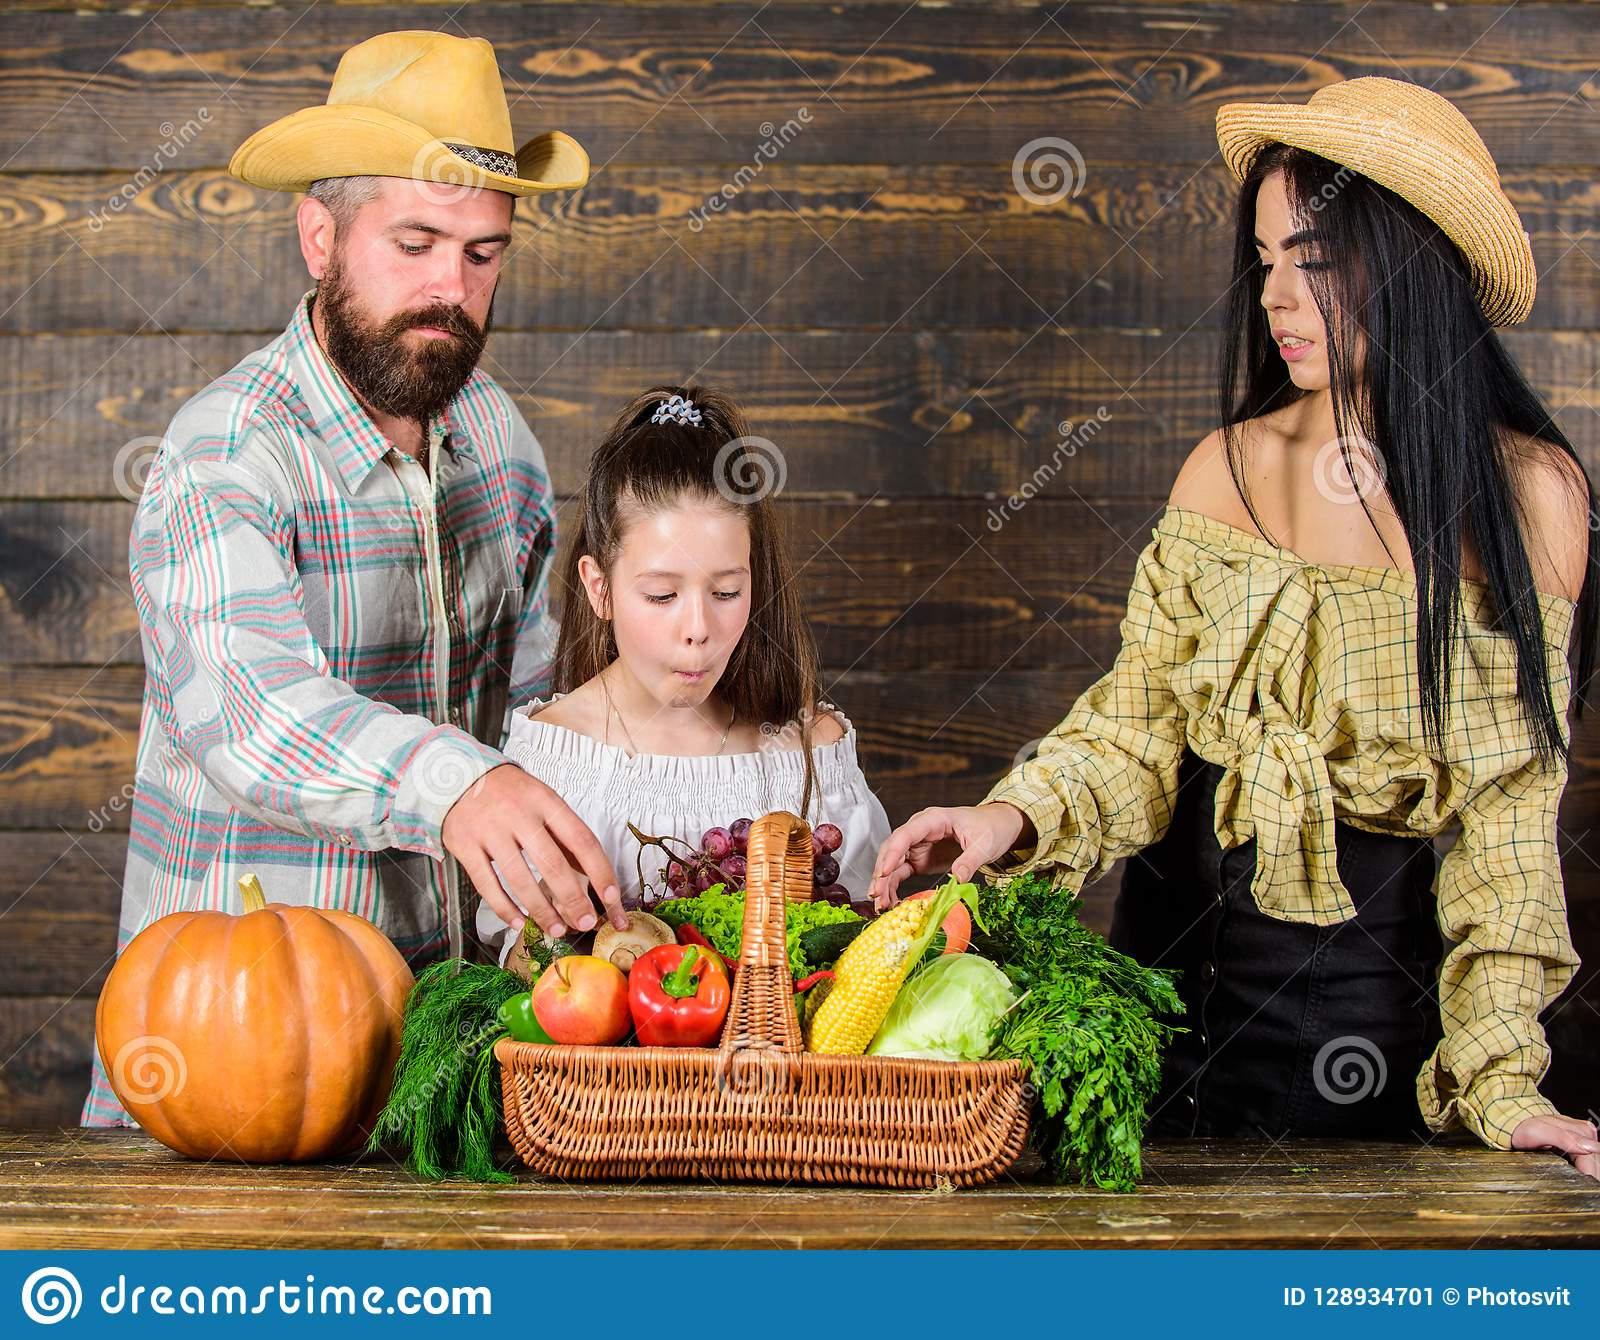 Family rustic style farmers market with fall harvest. Harvest festival concept. Family farmers with harvest wooden